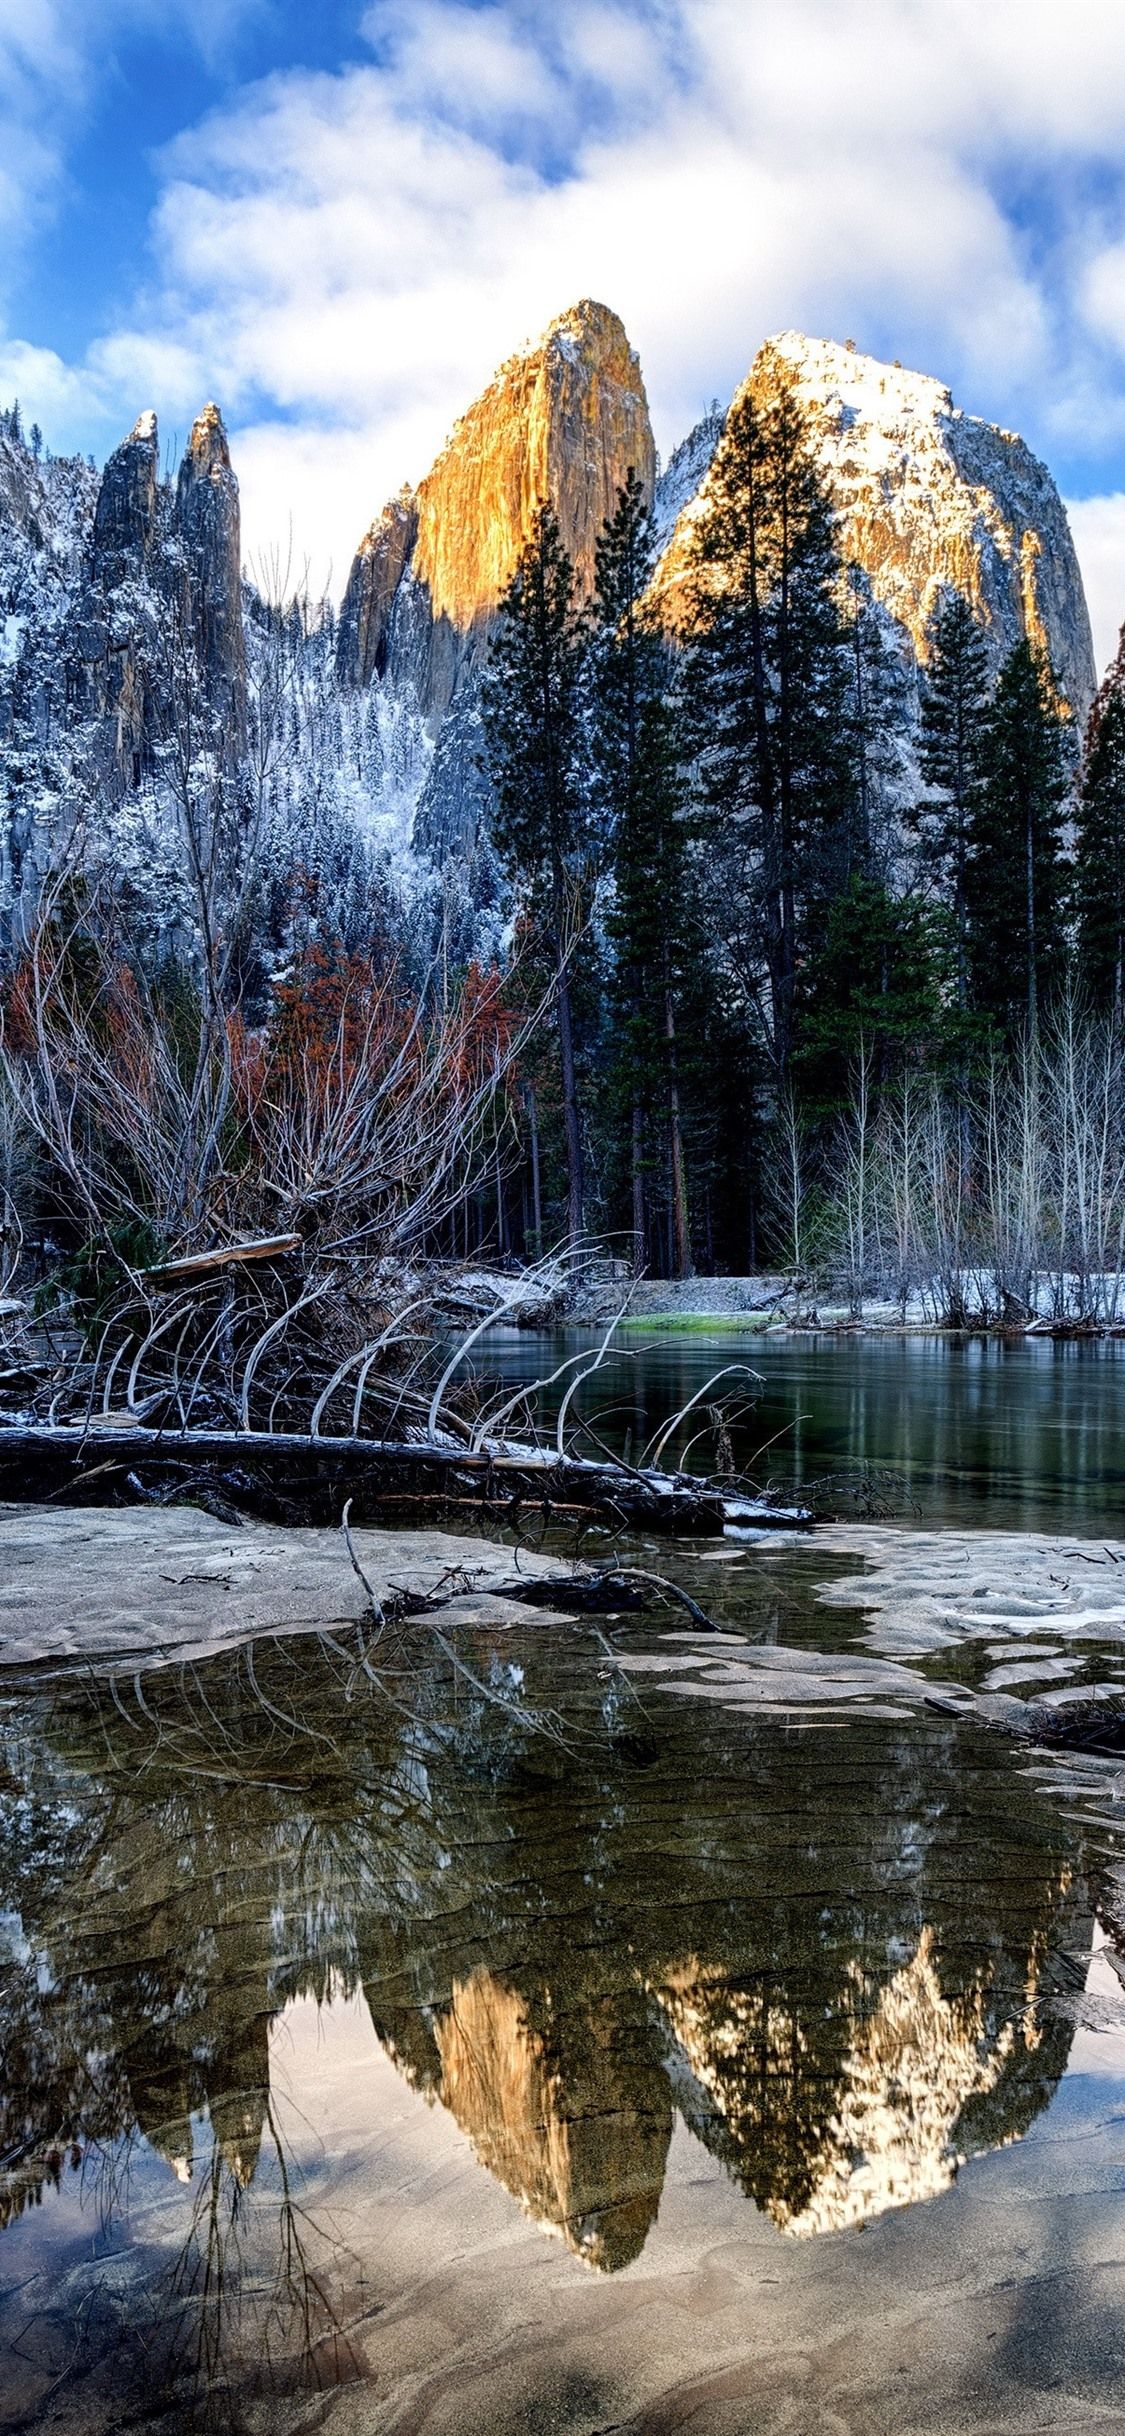 Winter River Trees Mountains Snow Yosemite National Park Usa 1125x2436 Iphone 11 Pro Xs X Wallpaper Background Picture Image